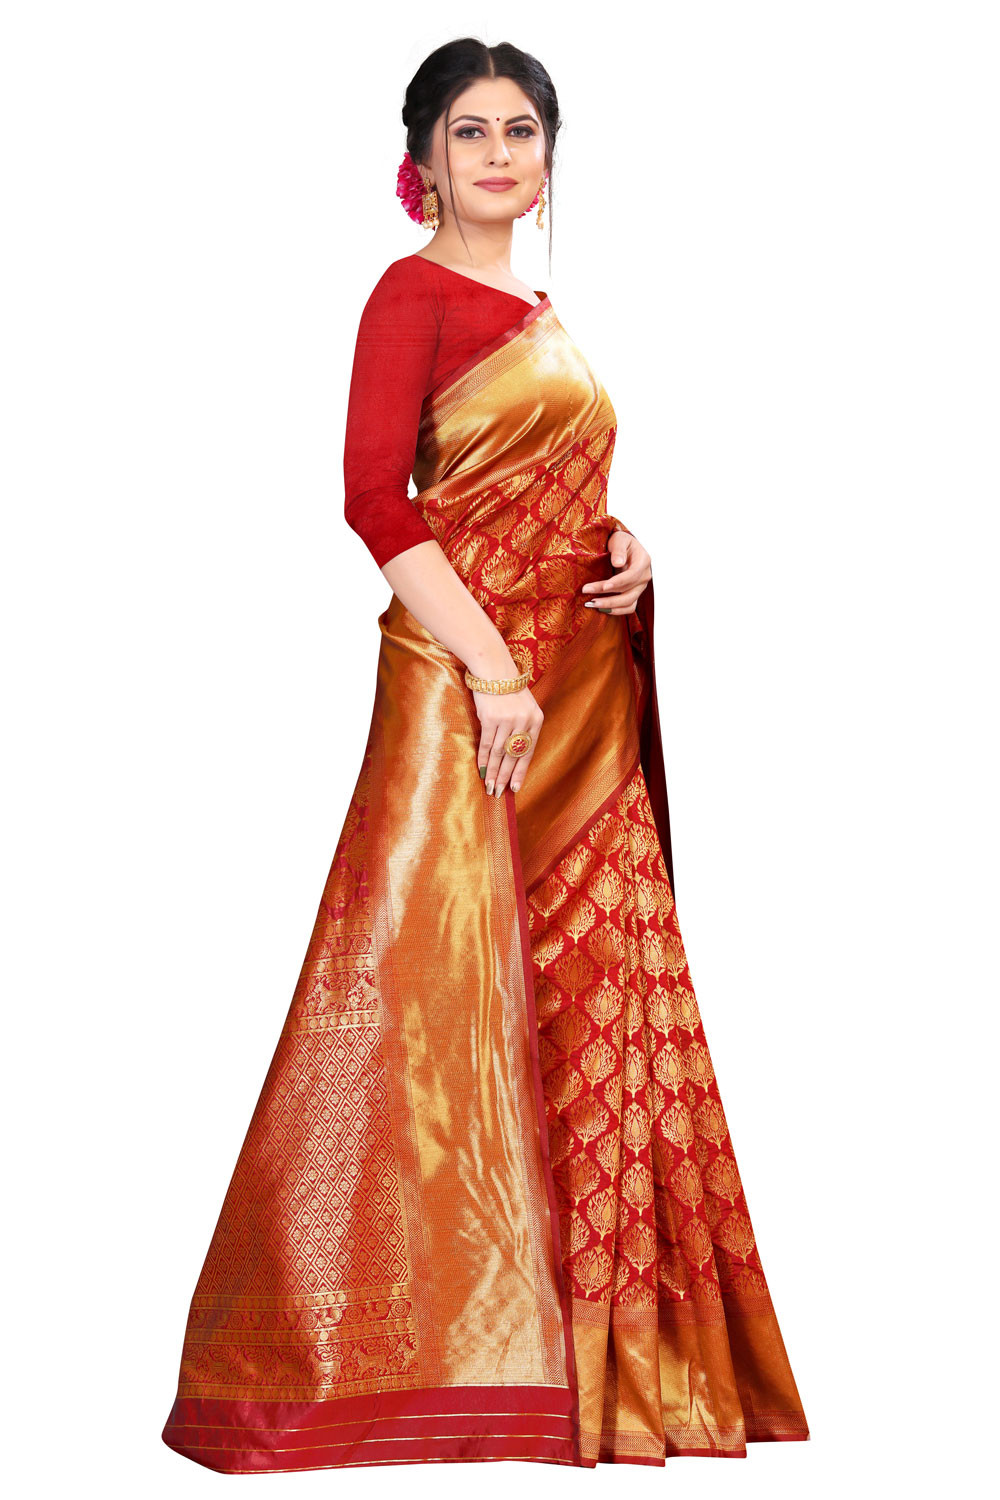 DD 174  vermillion red Kanchipuram silk brocade red saree